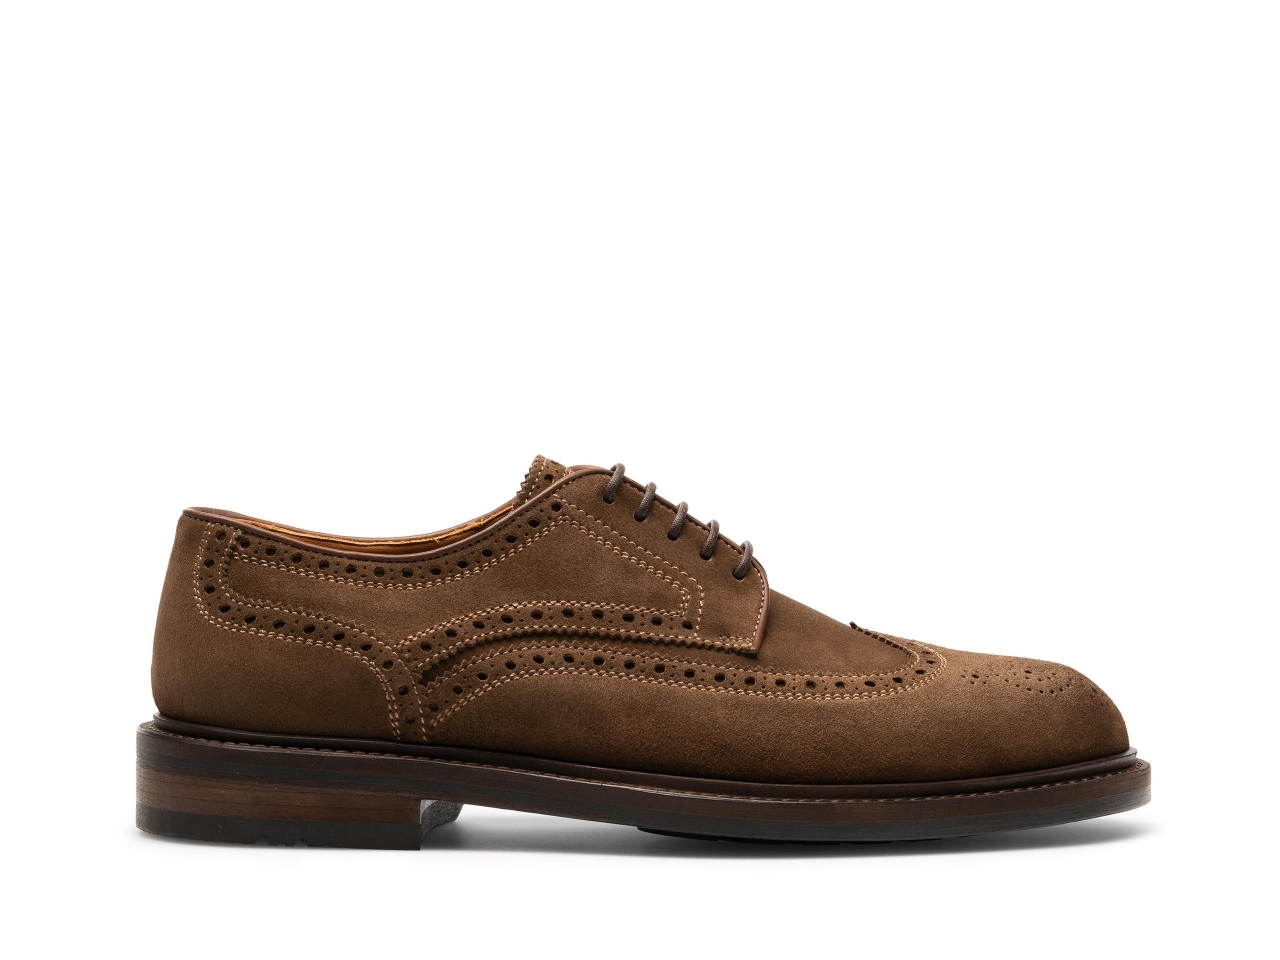 Side of the Apolo Torba Suede